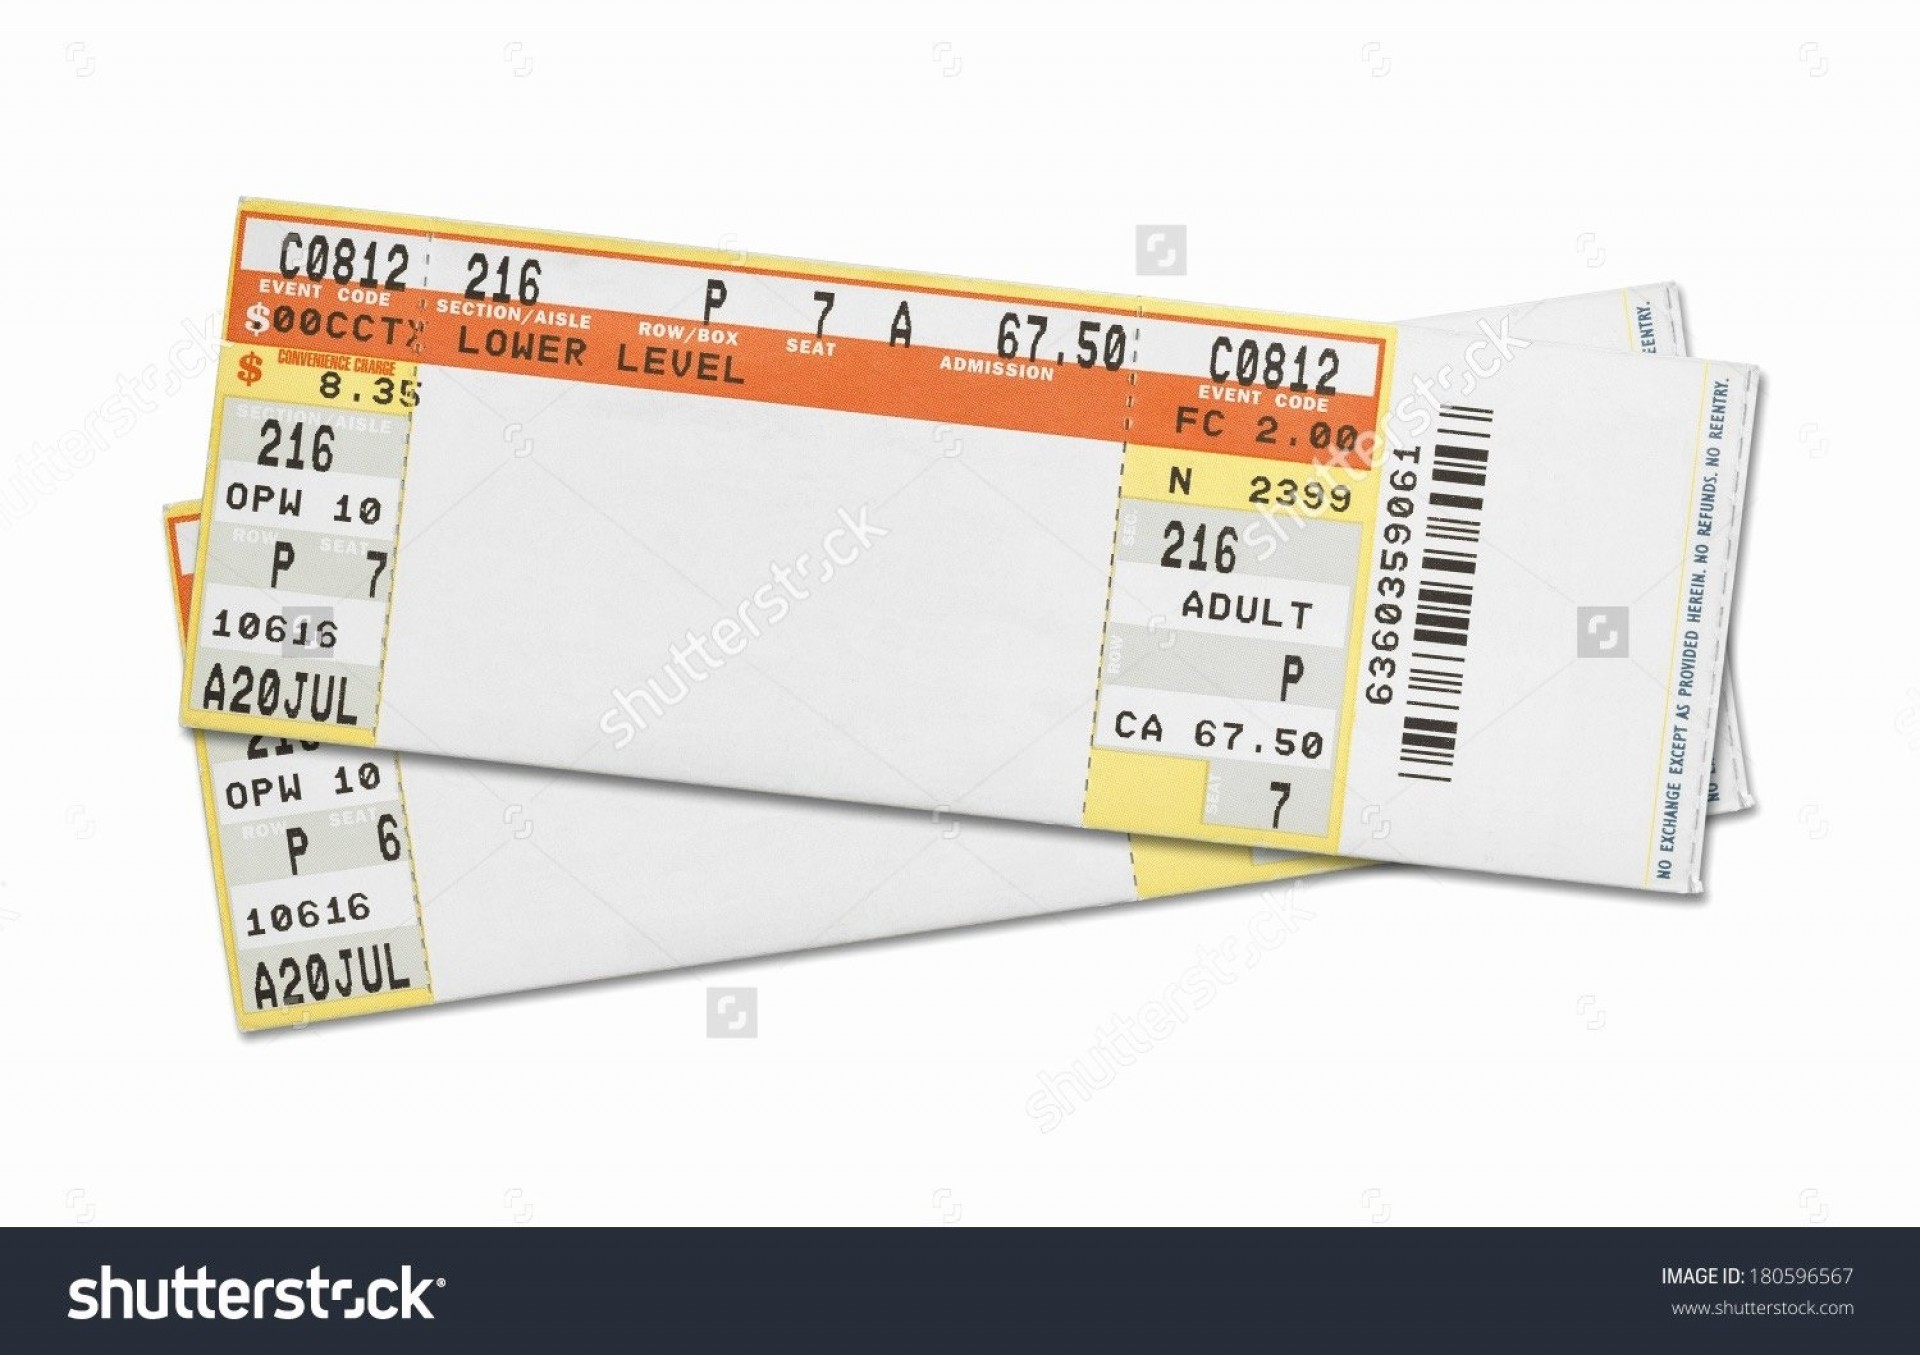 002 Dreaded Free Fake Concert Ticket Template Sample 1920